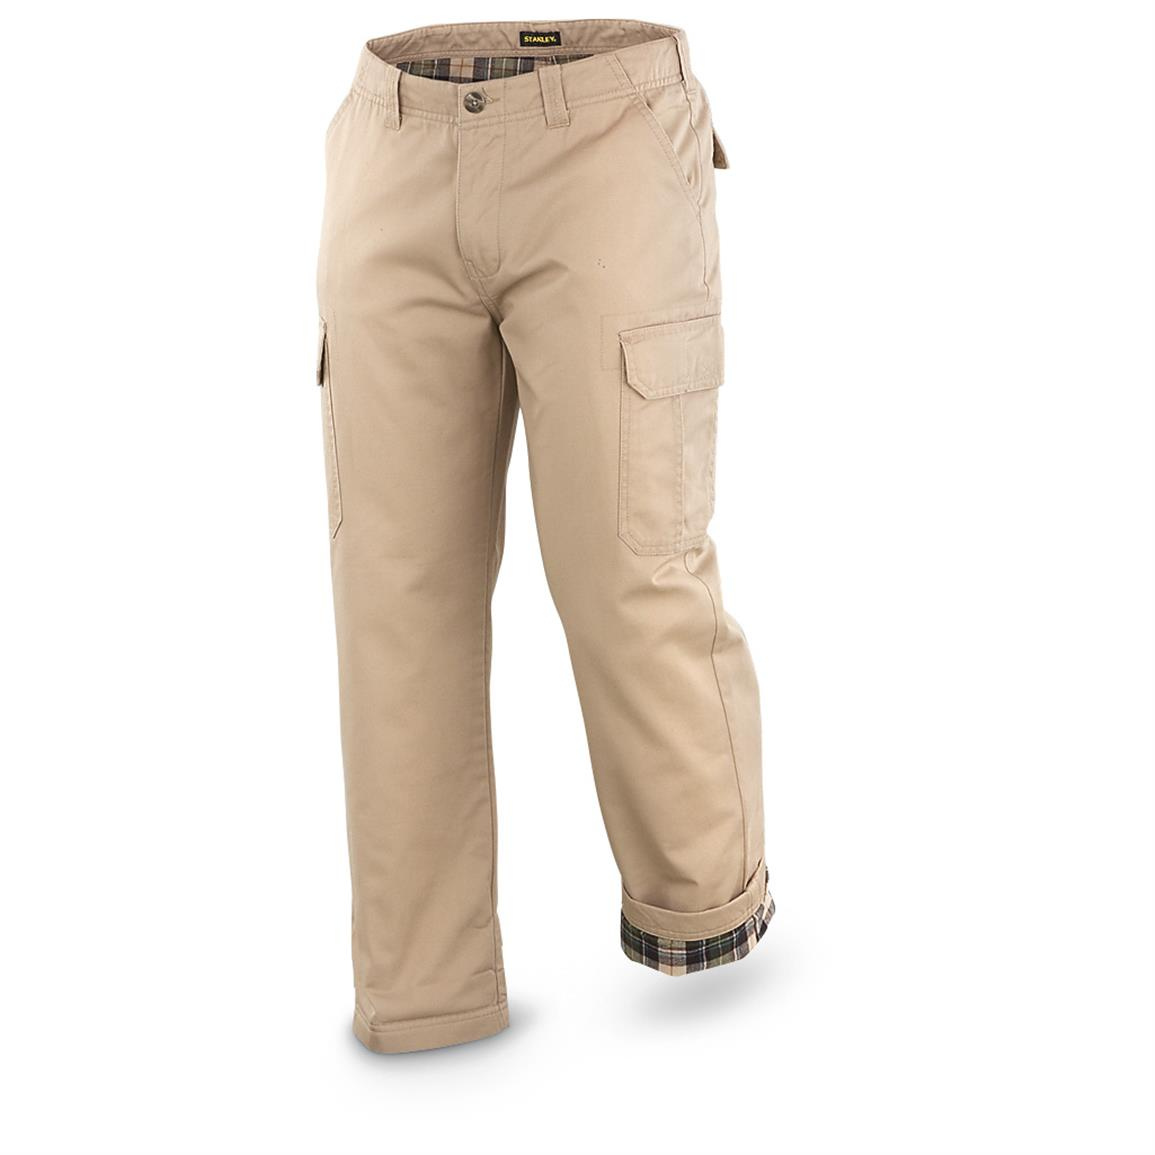 Stanley® Flannel-lined Cargo Pants, Khaki - 616562, Insulated ...